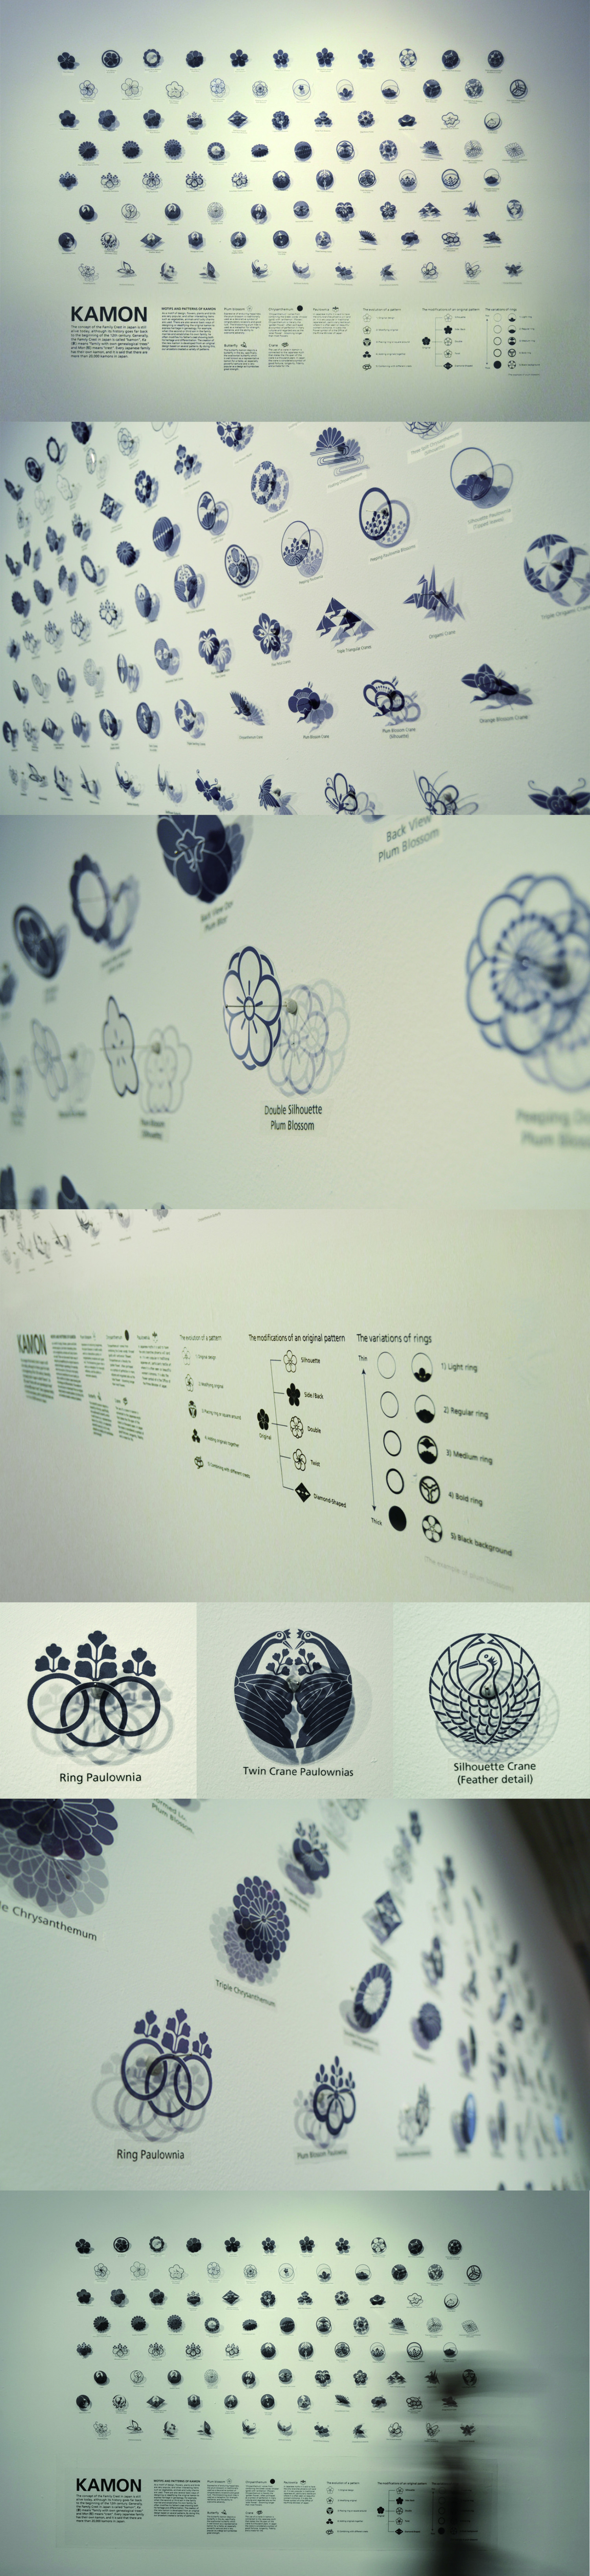 The Specimen of KAMON Infographic